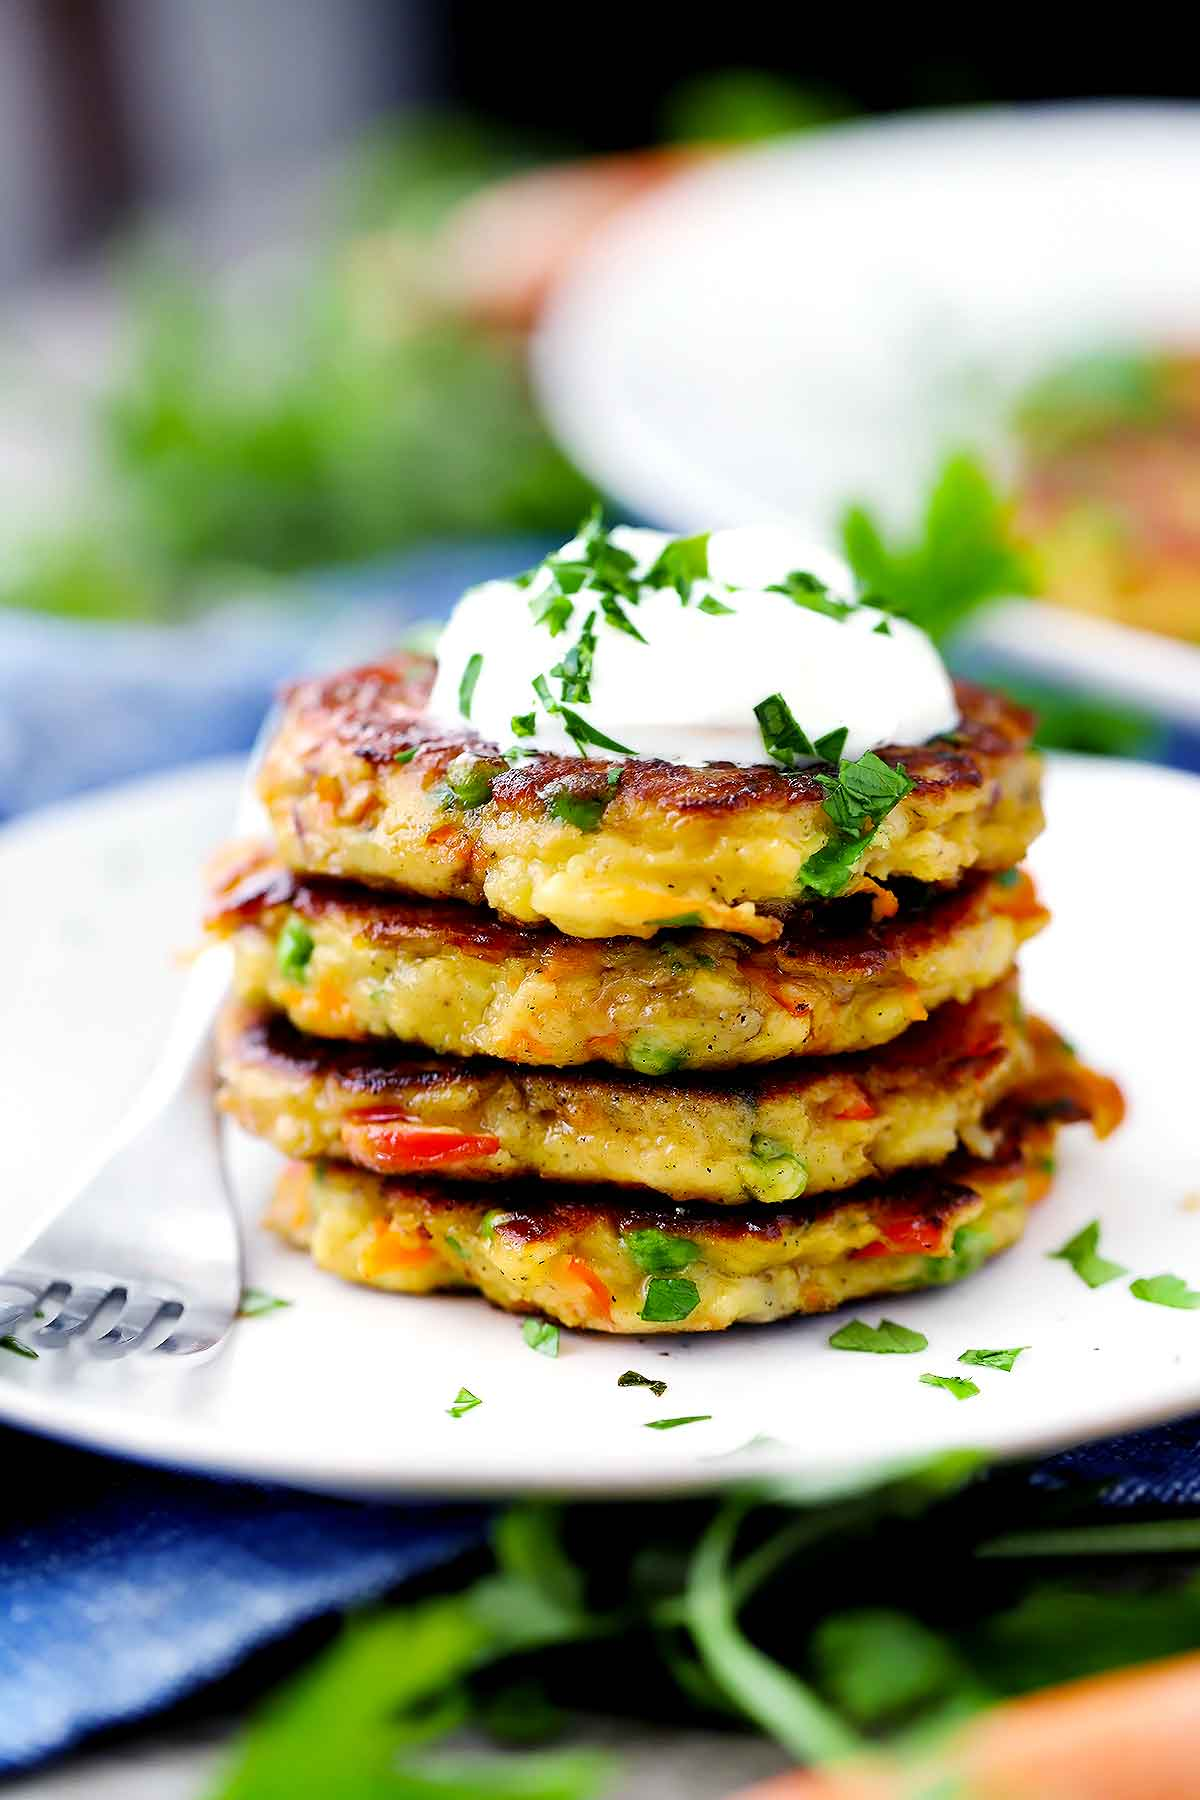 A sideways shot of a stack of mashed potato cakes with sour cream on top.